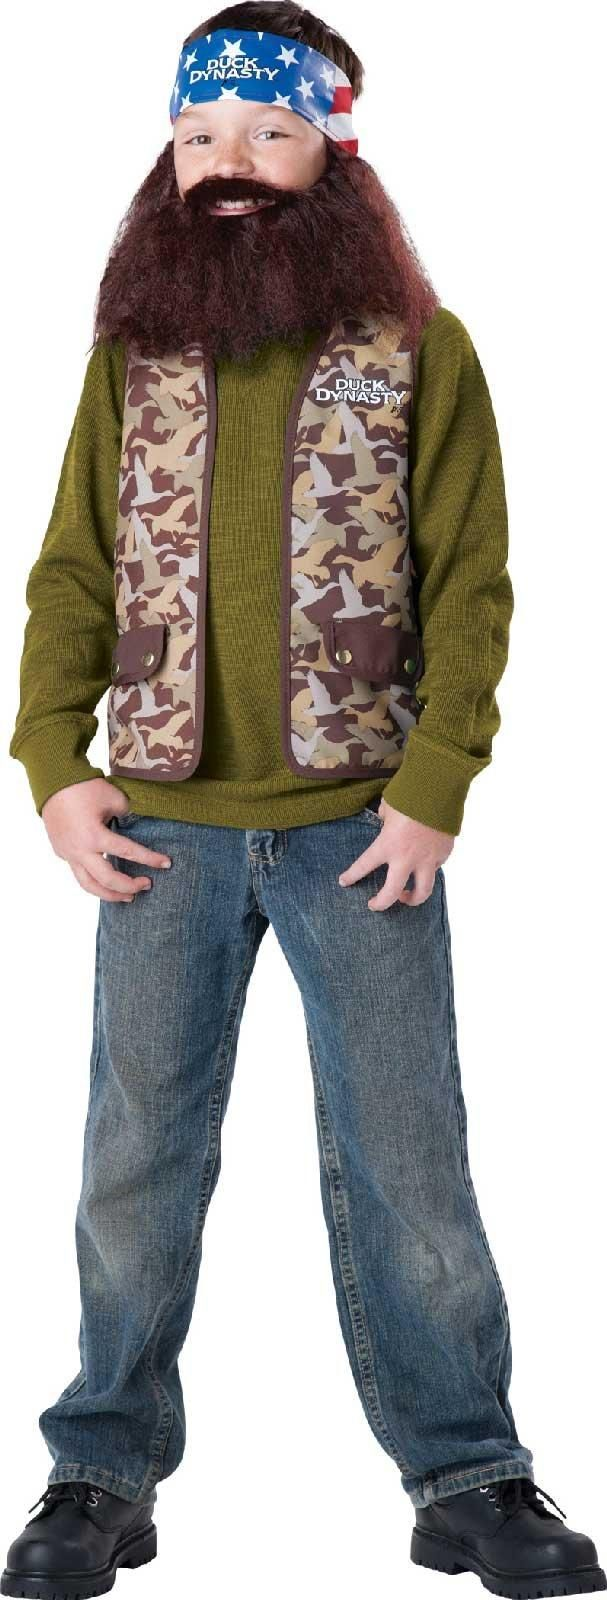 Duck Dynasty - Willie Child Costume from Buycostumes.com